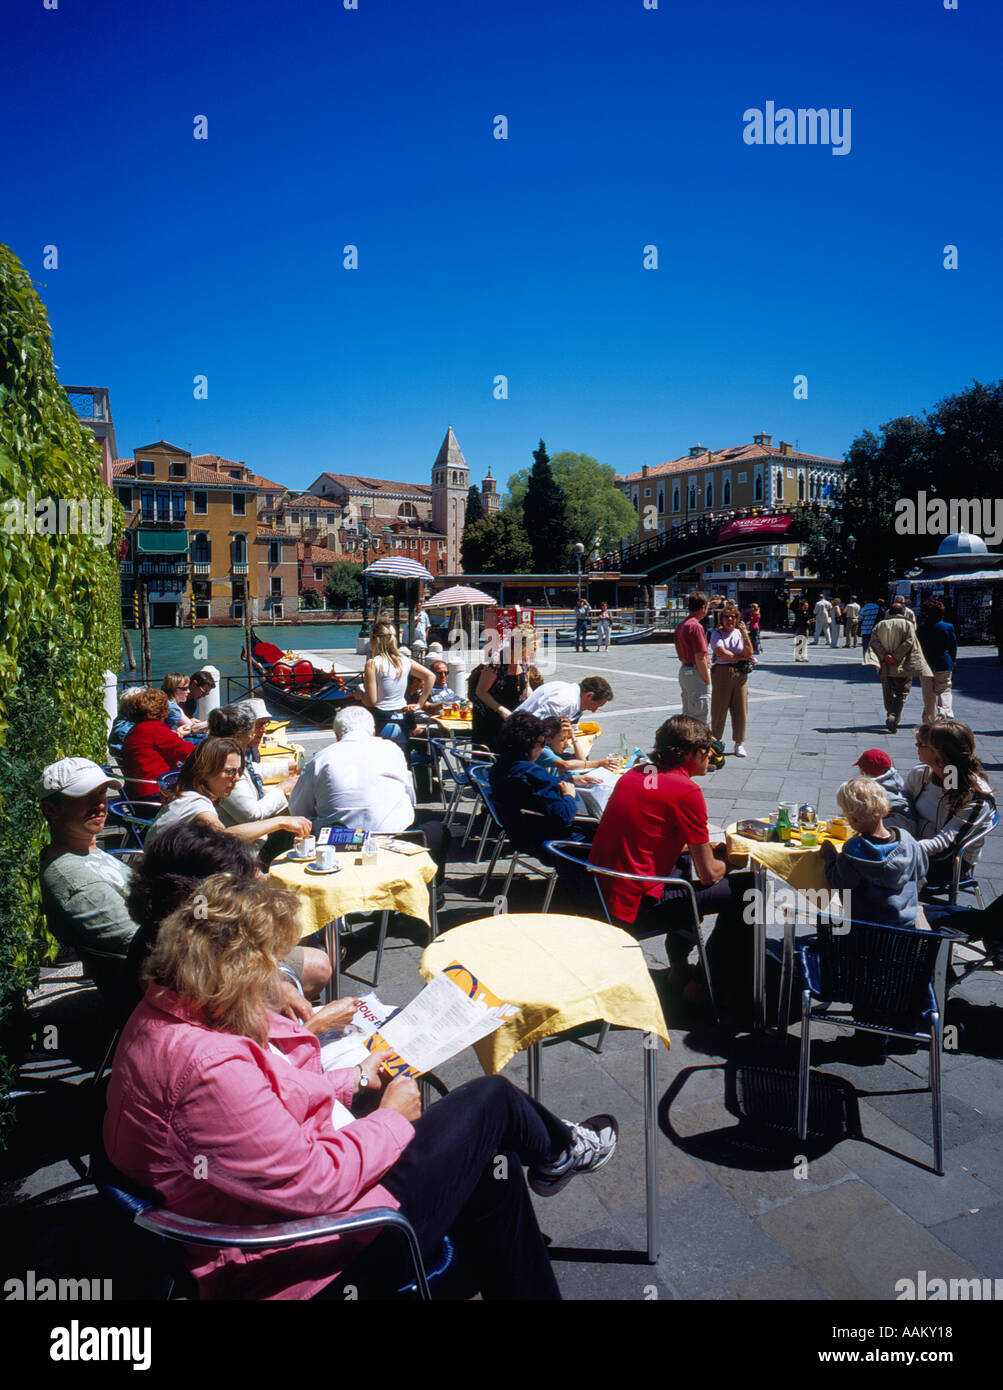 Campi d Carita Accademica,  Venice, UNESCO World Heritage Site, Italy,  Europe. Photo by Willy Matheisl Stock Photo